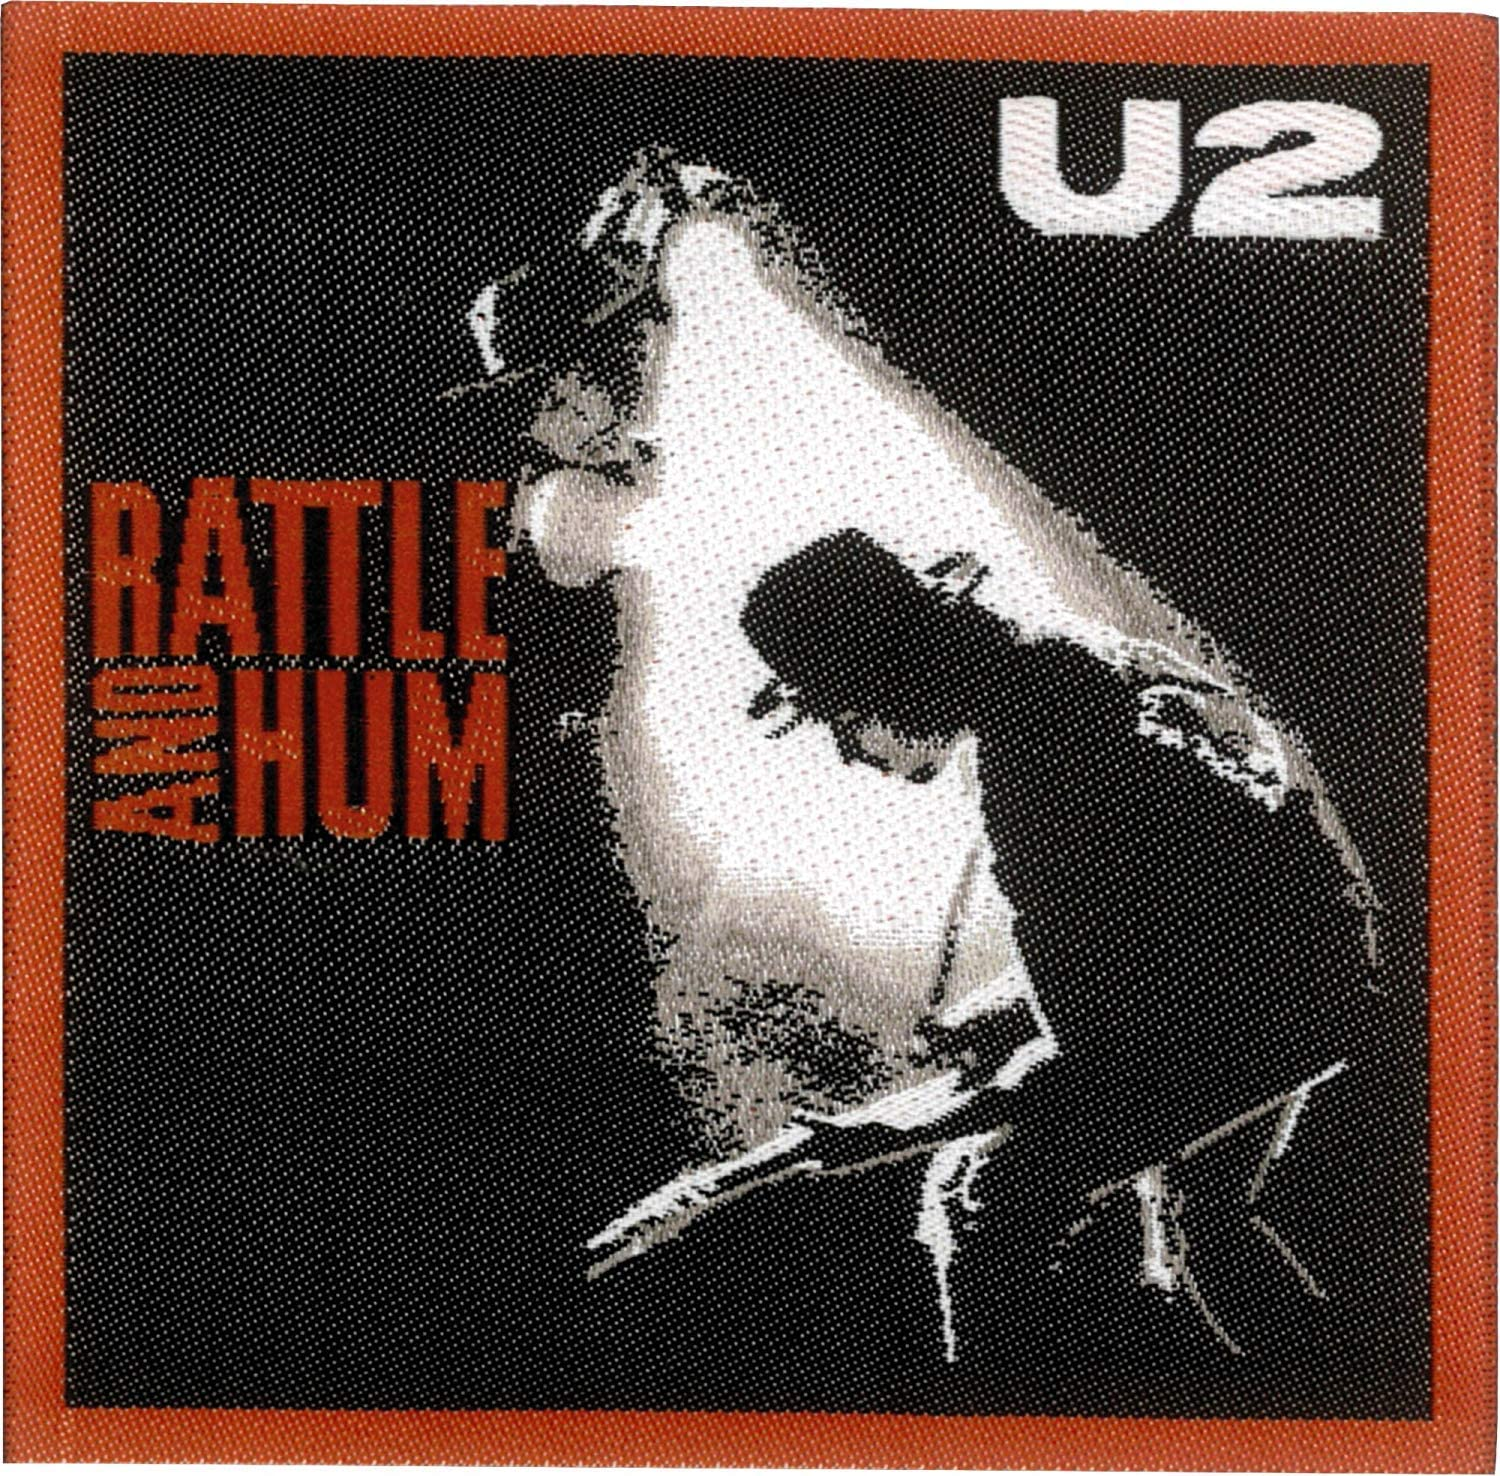 3 x 3 Embroidered PATCH PI/éCE U2 Rattle /& Hum Officially Licensed Original Artwork Premium Quality Iron-On // Sew-On